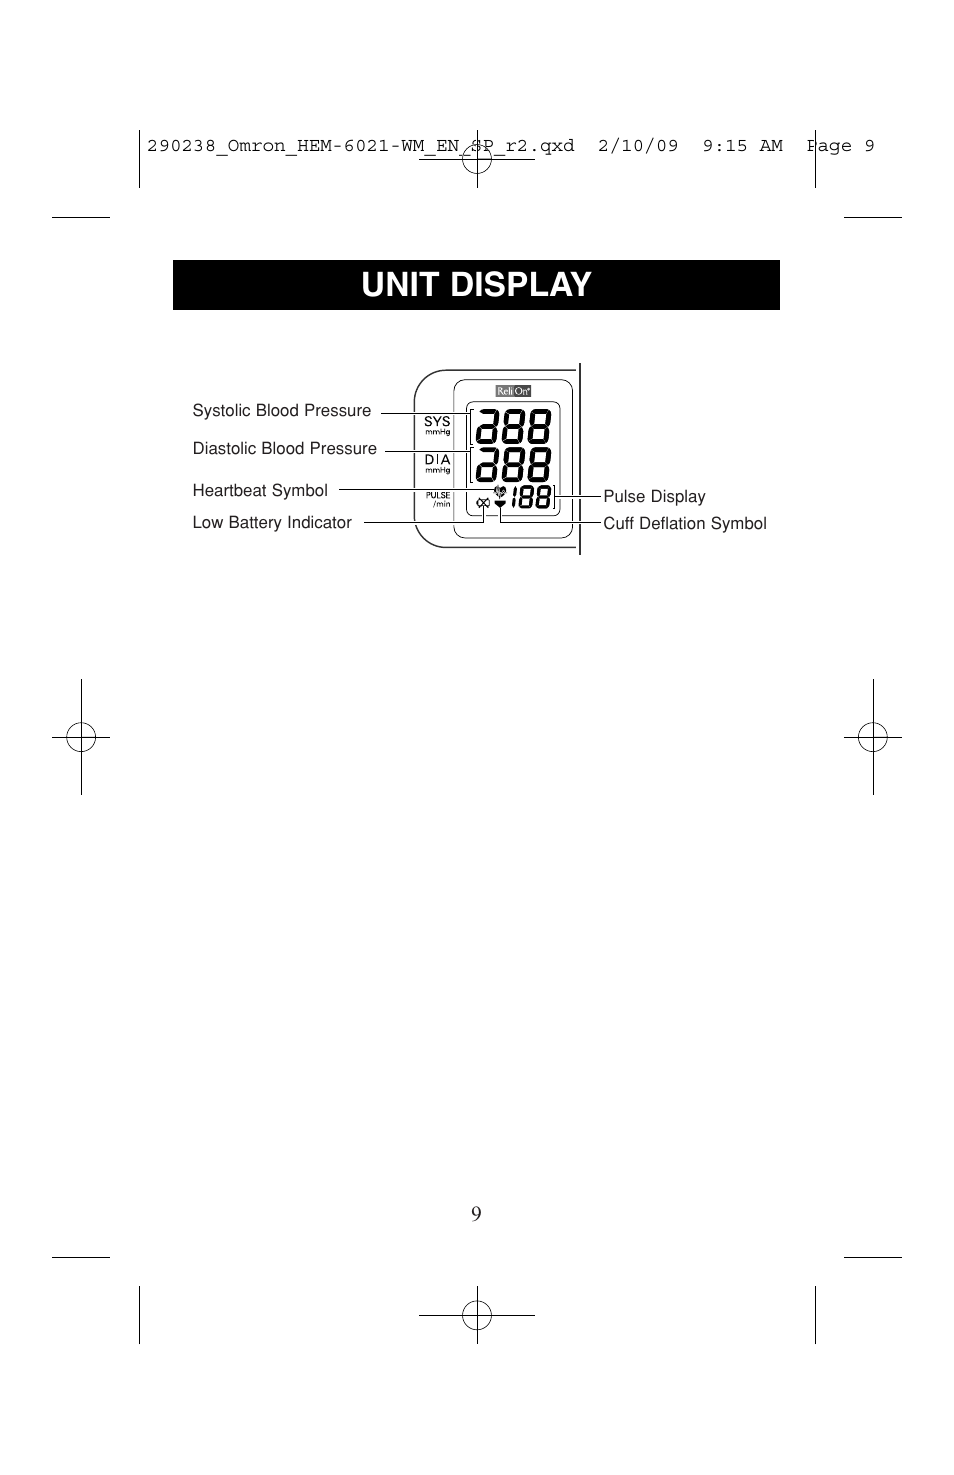 Unit Display Relion 6021rel User Manual Page 9 44